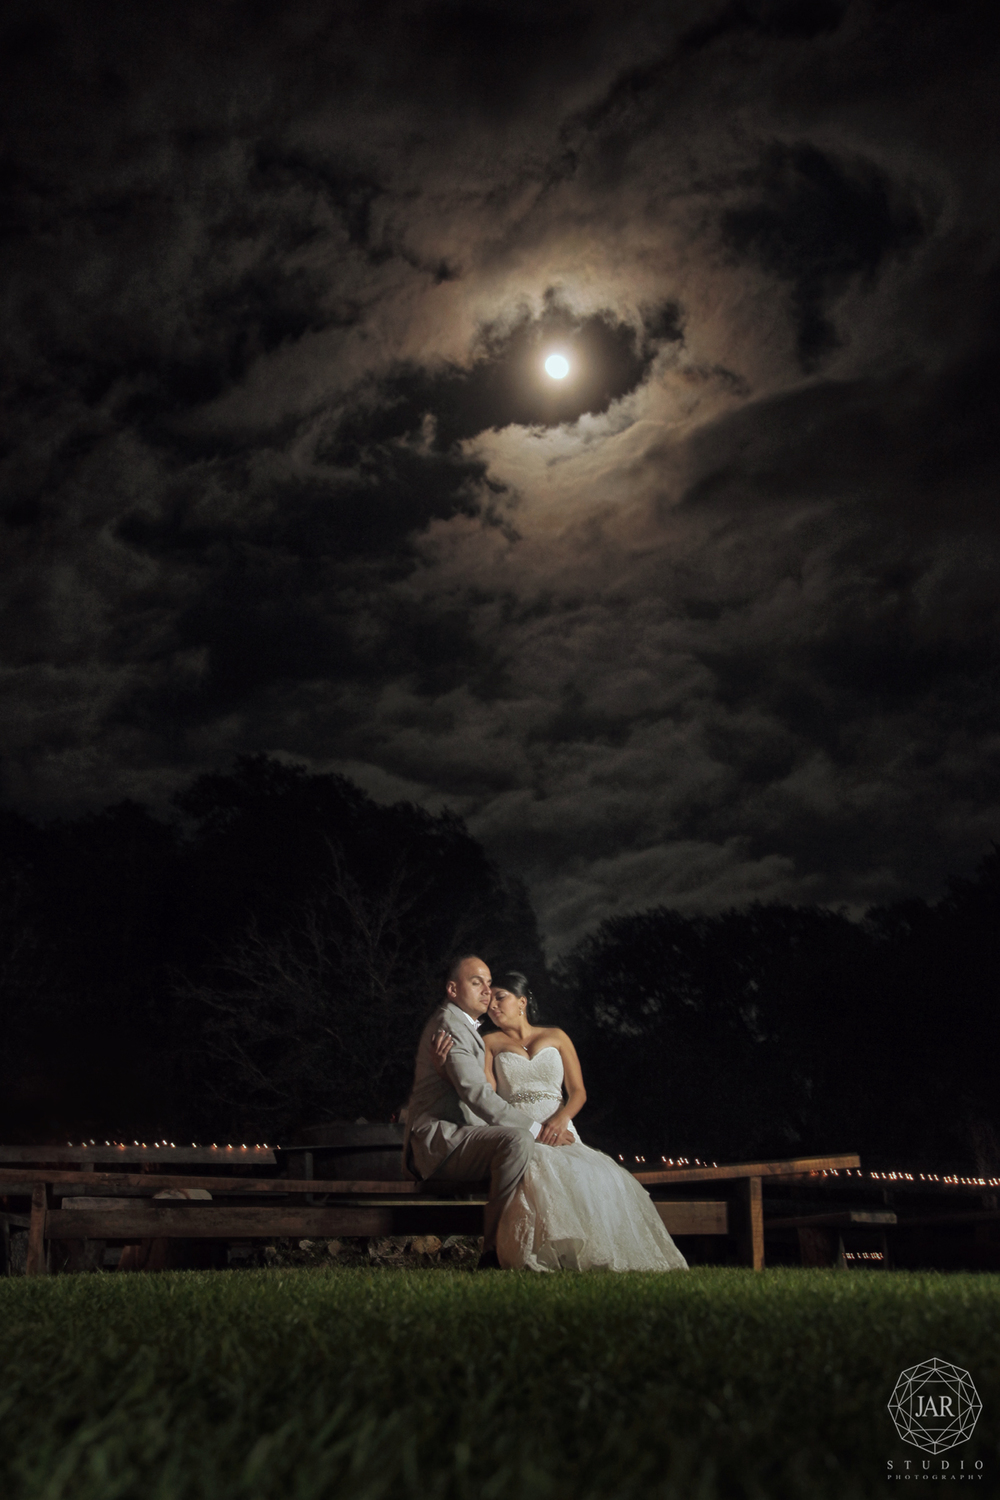 20-bride-groom-romantic-under-moon-light-night-isola-farms-jarstudio.jpg